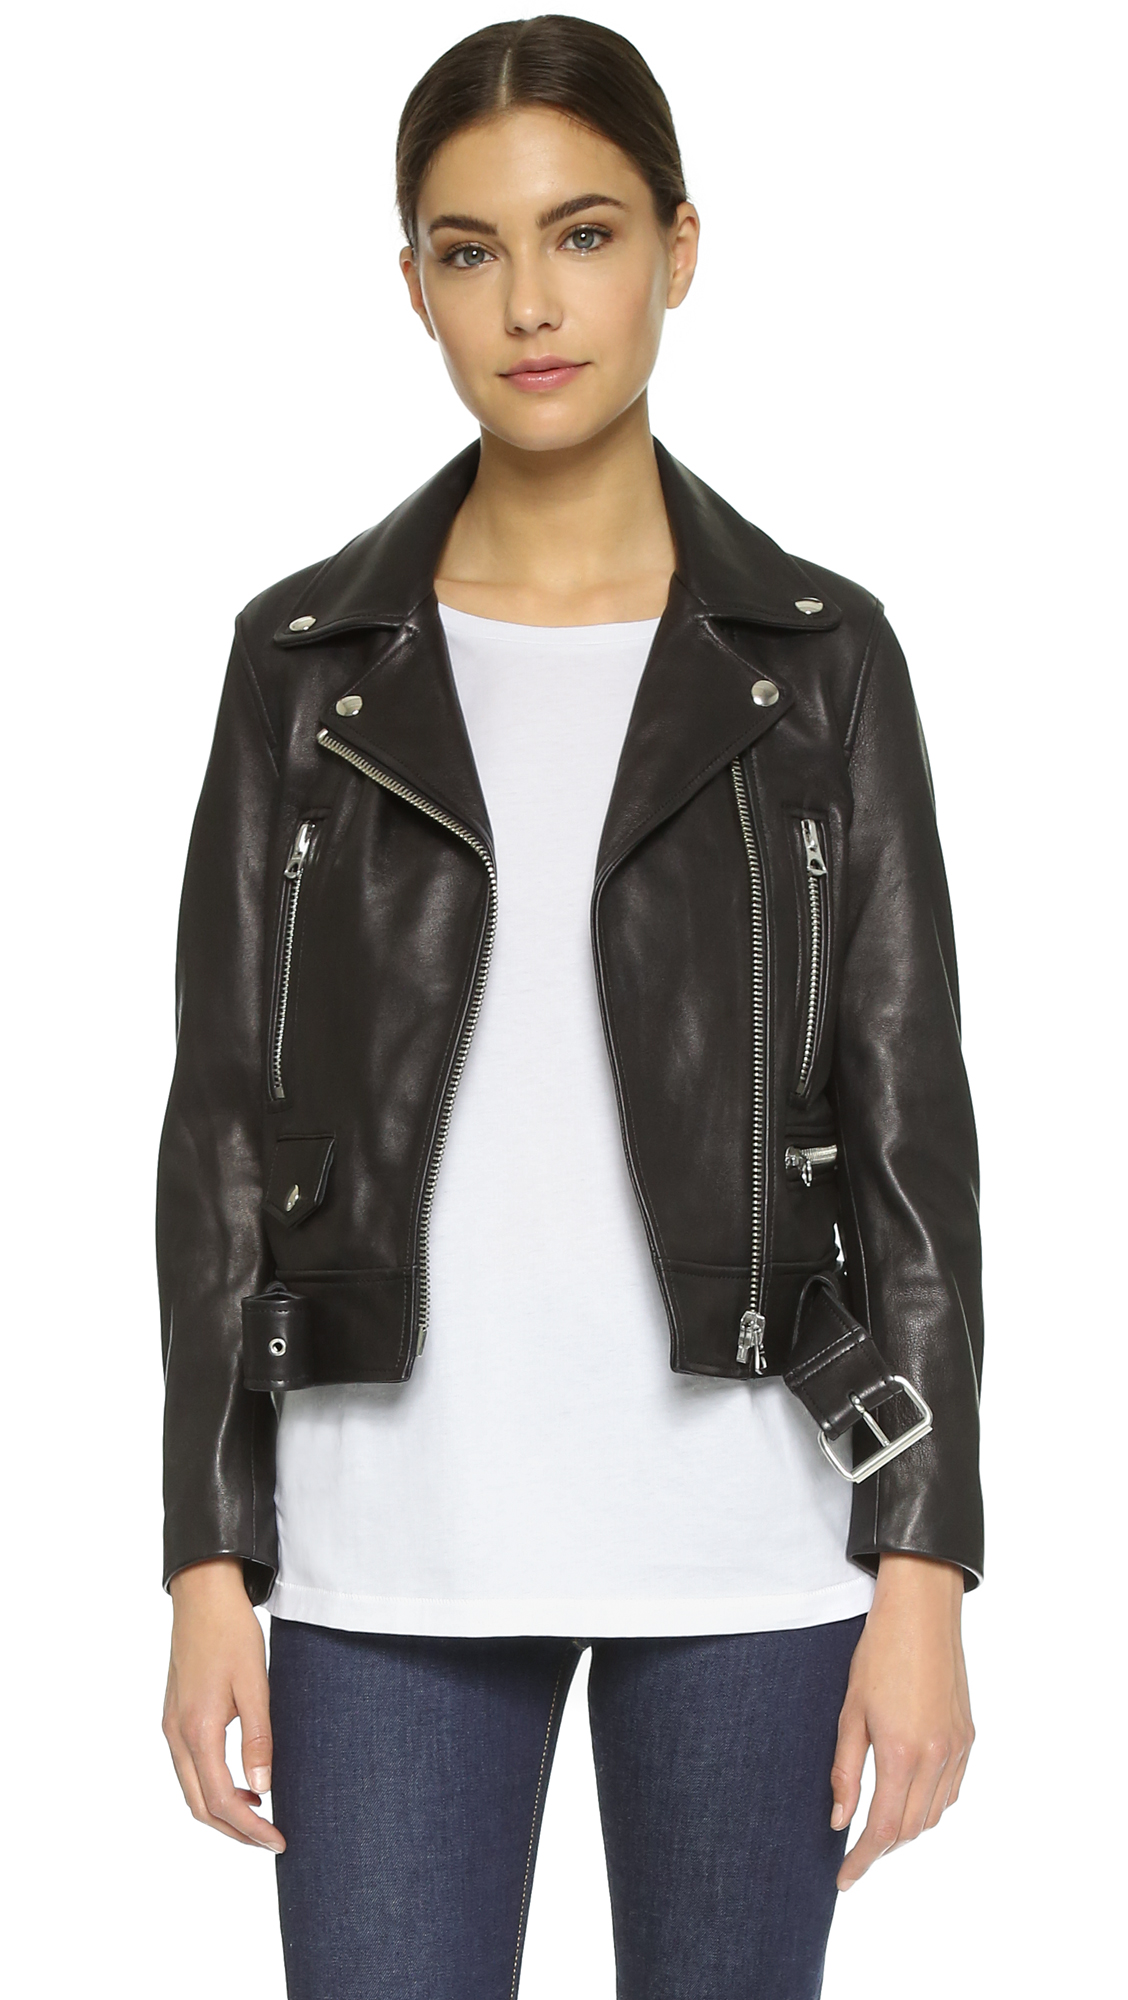 Acne Studios Mock Leather Moto Jacket - Black at Shopbop